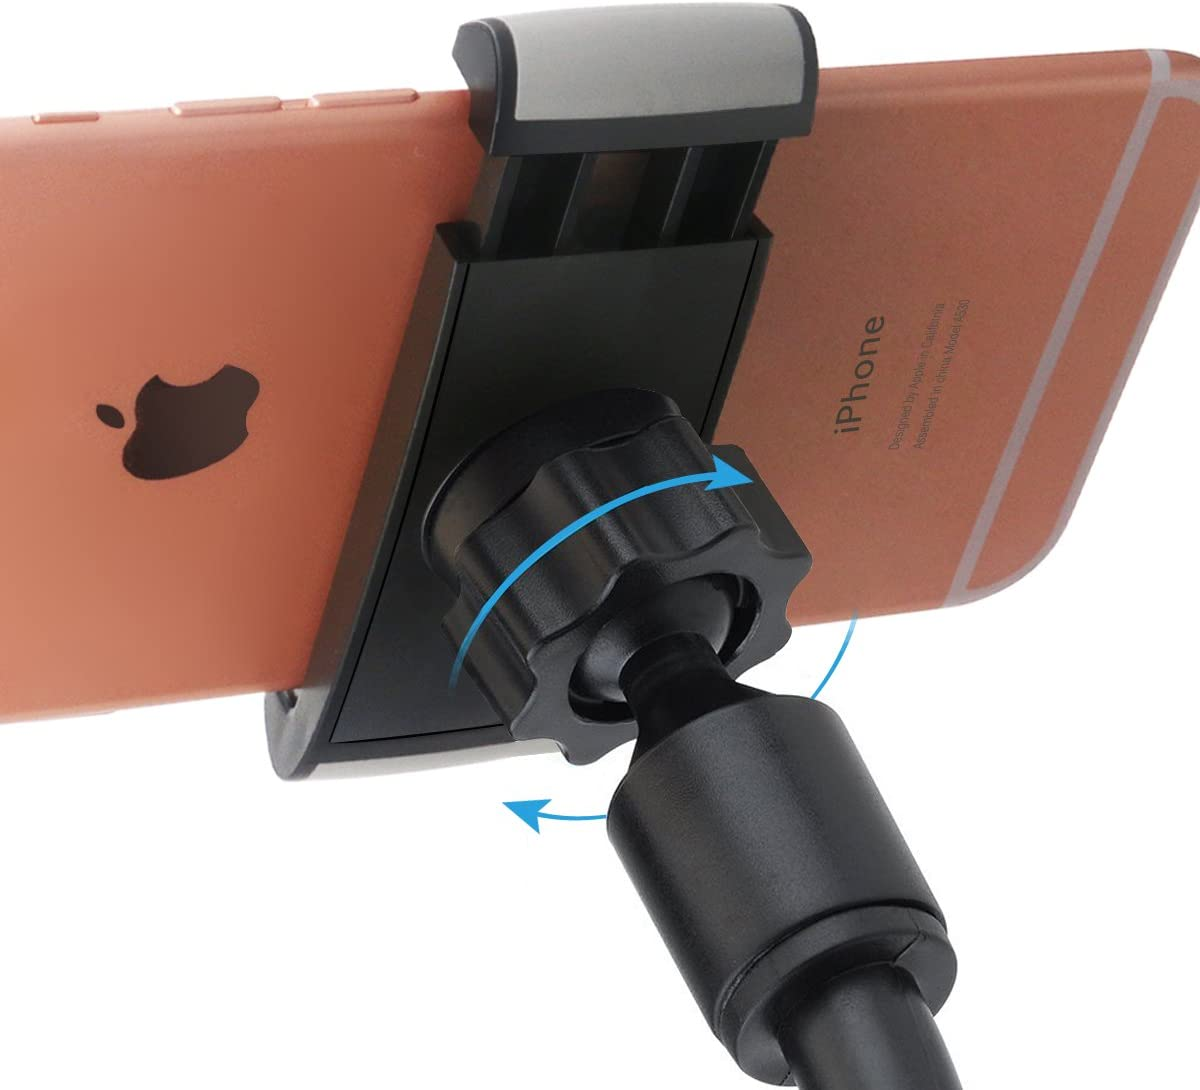 Car Mount Universal Windshield Phone Mount Car Holder Car Phone Mount Car Cell Phone Holder with Strong Suction Cup for iPhone X 8 Plus 7 Plus Samsung Galaxy S9 Plus S8 Note S7 Edge LG Sony and More